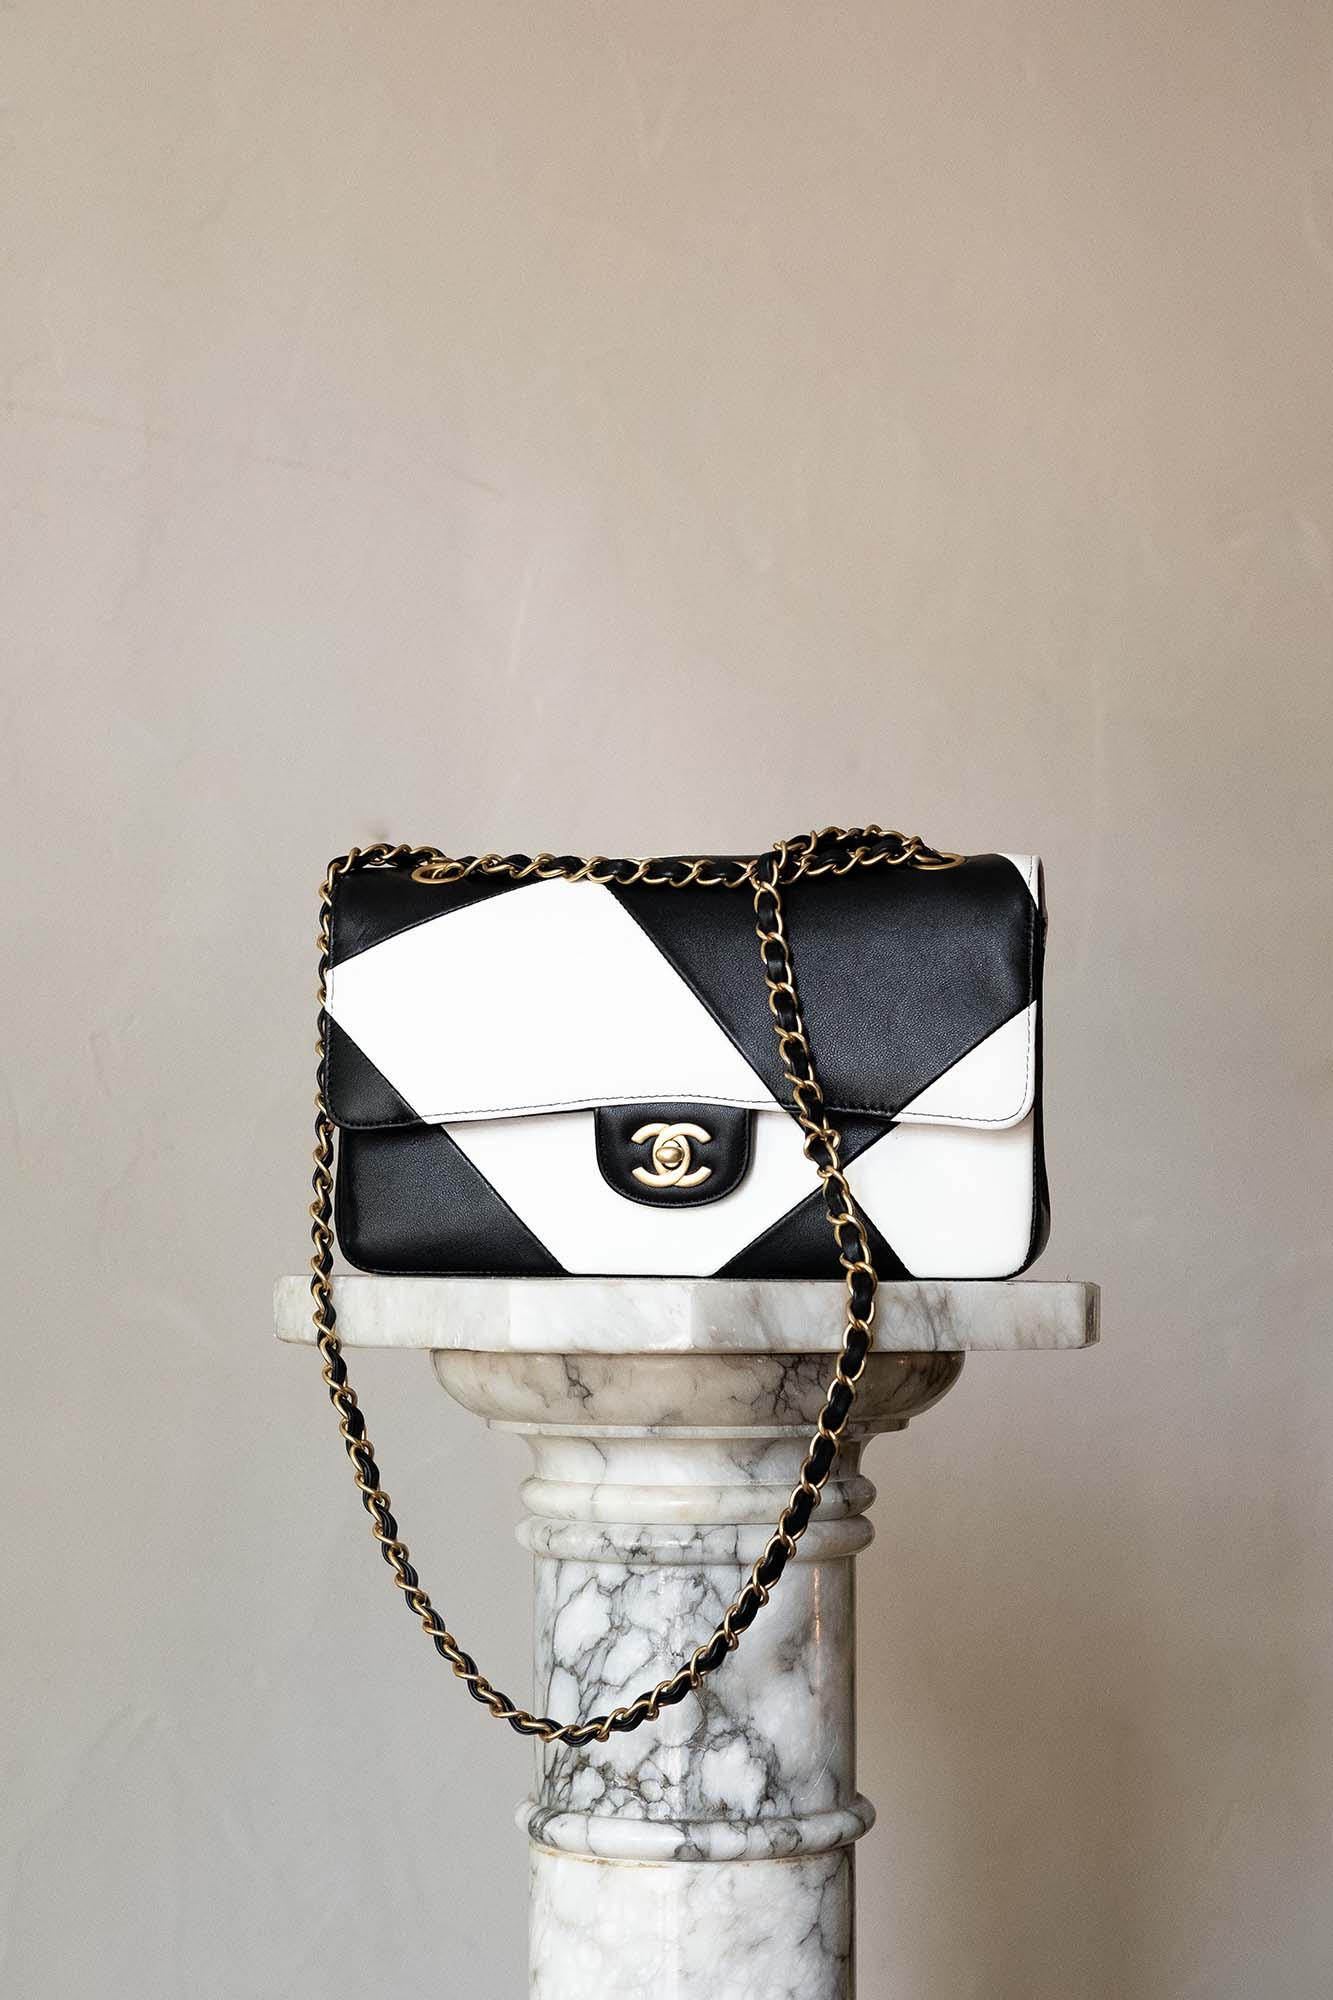 Chanel Classic Flap in Black and White, Hardware